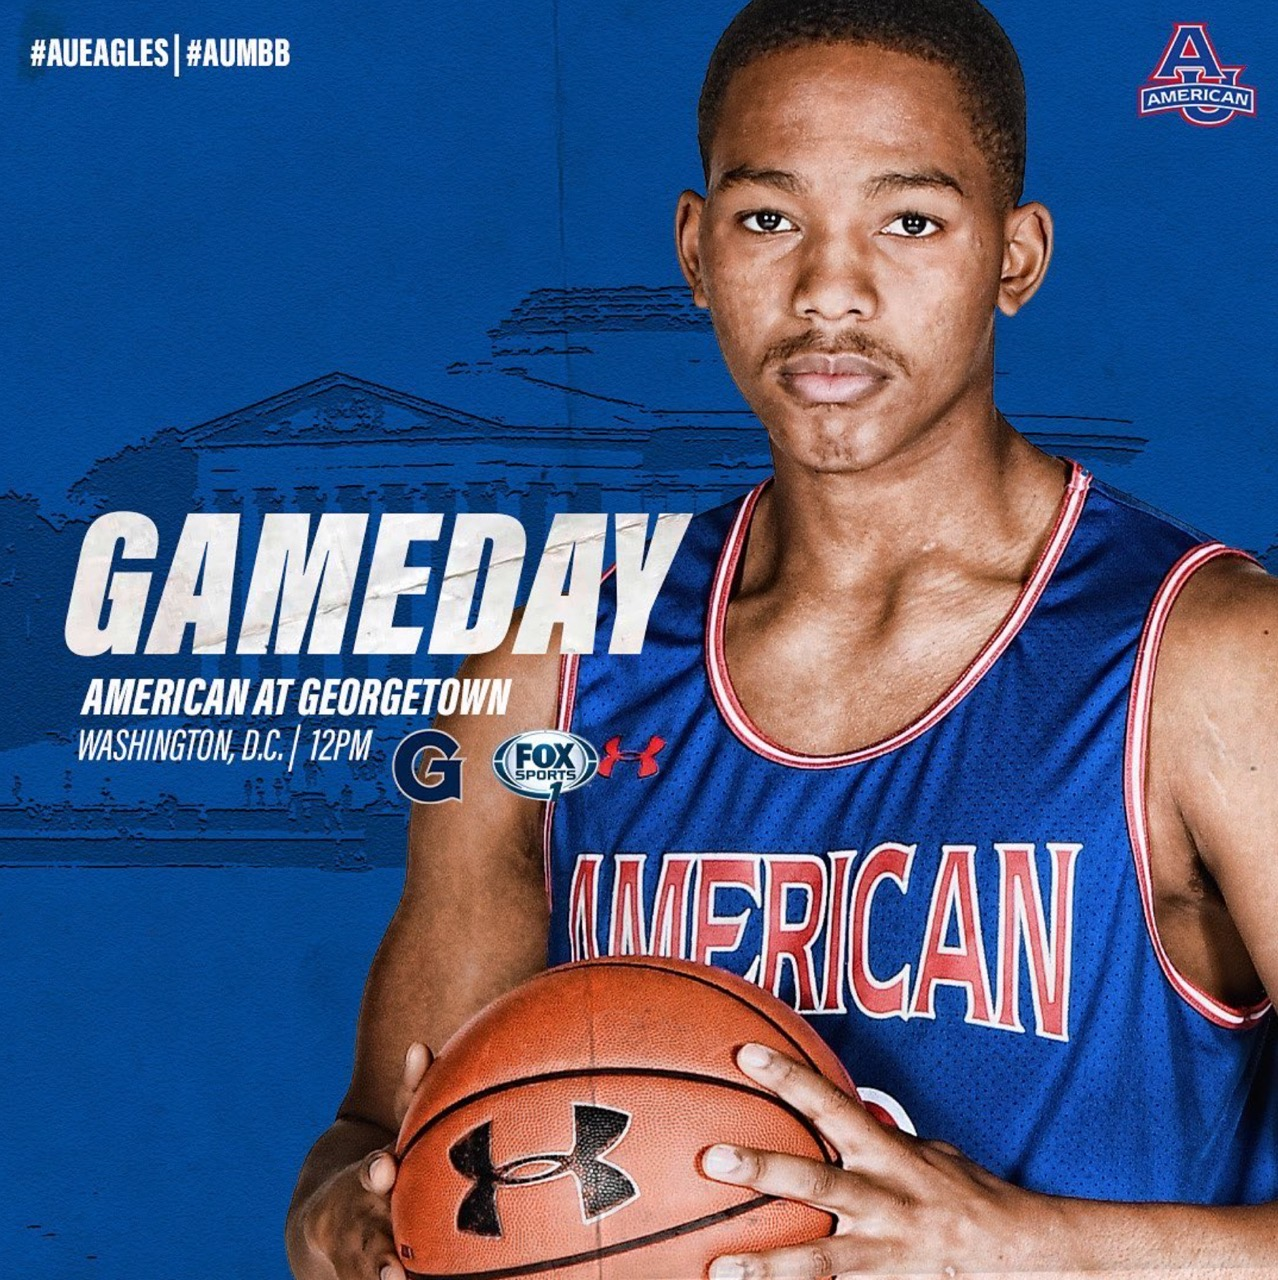 American University Men's Basketball Releases United Message against Racism and Social Injustice